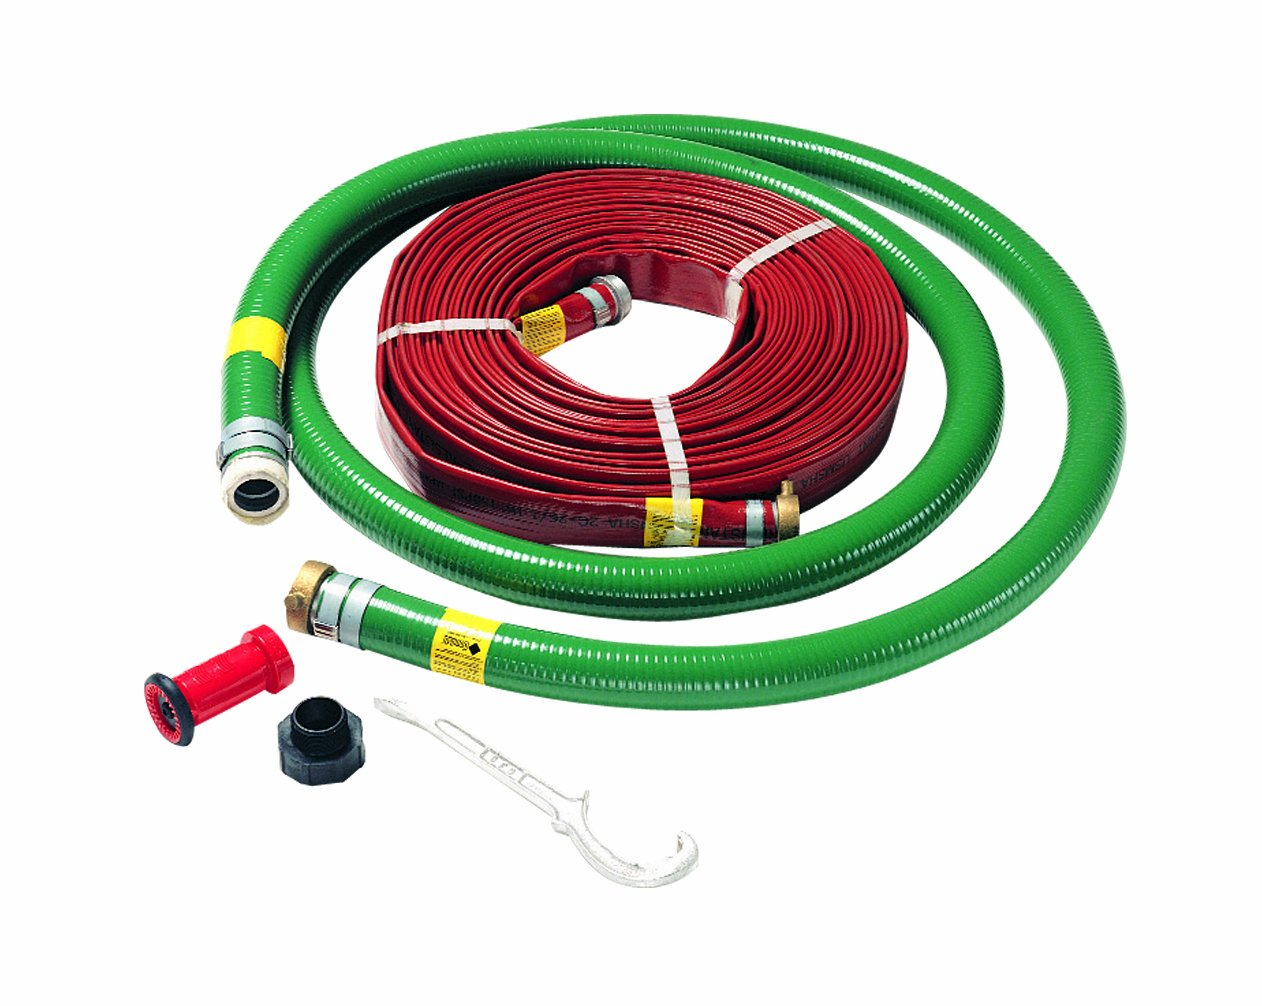 1-1//2 Fire Nozzle 1-1//2 x 2 Adapter and Hose Wrench AMT Pump 055-338 2 High Pressure Hose Kit with 20 ft 2 Suction and 100 ft 100 PSI 1-1//2 High Pressure Discharge Hose